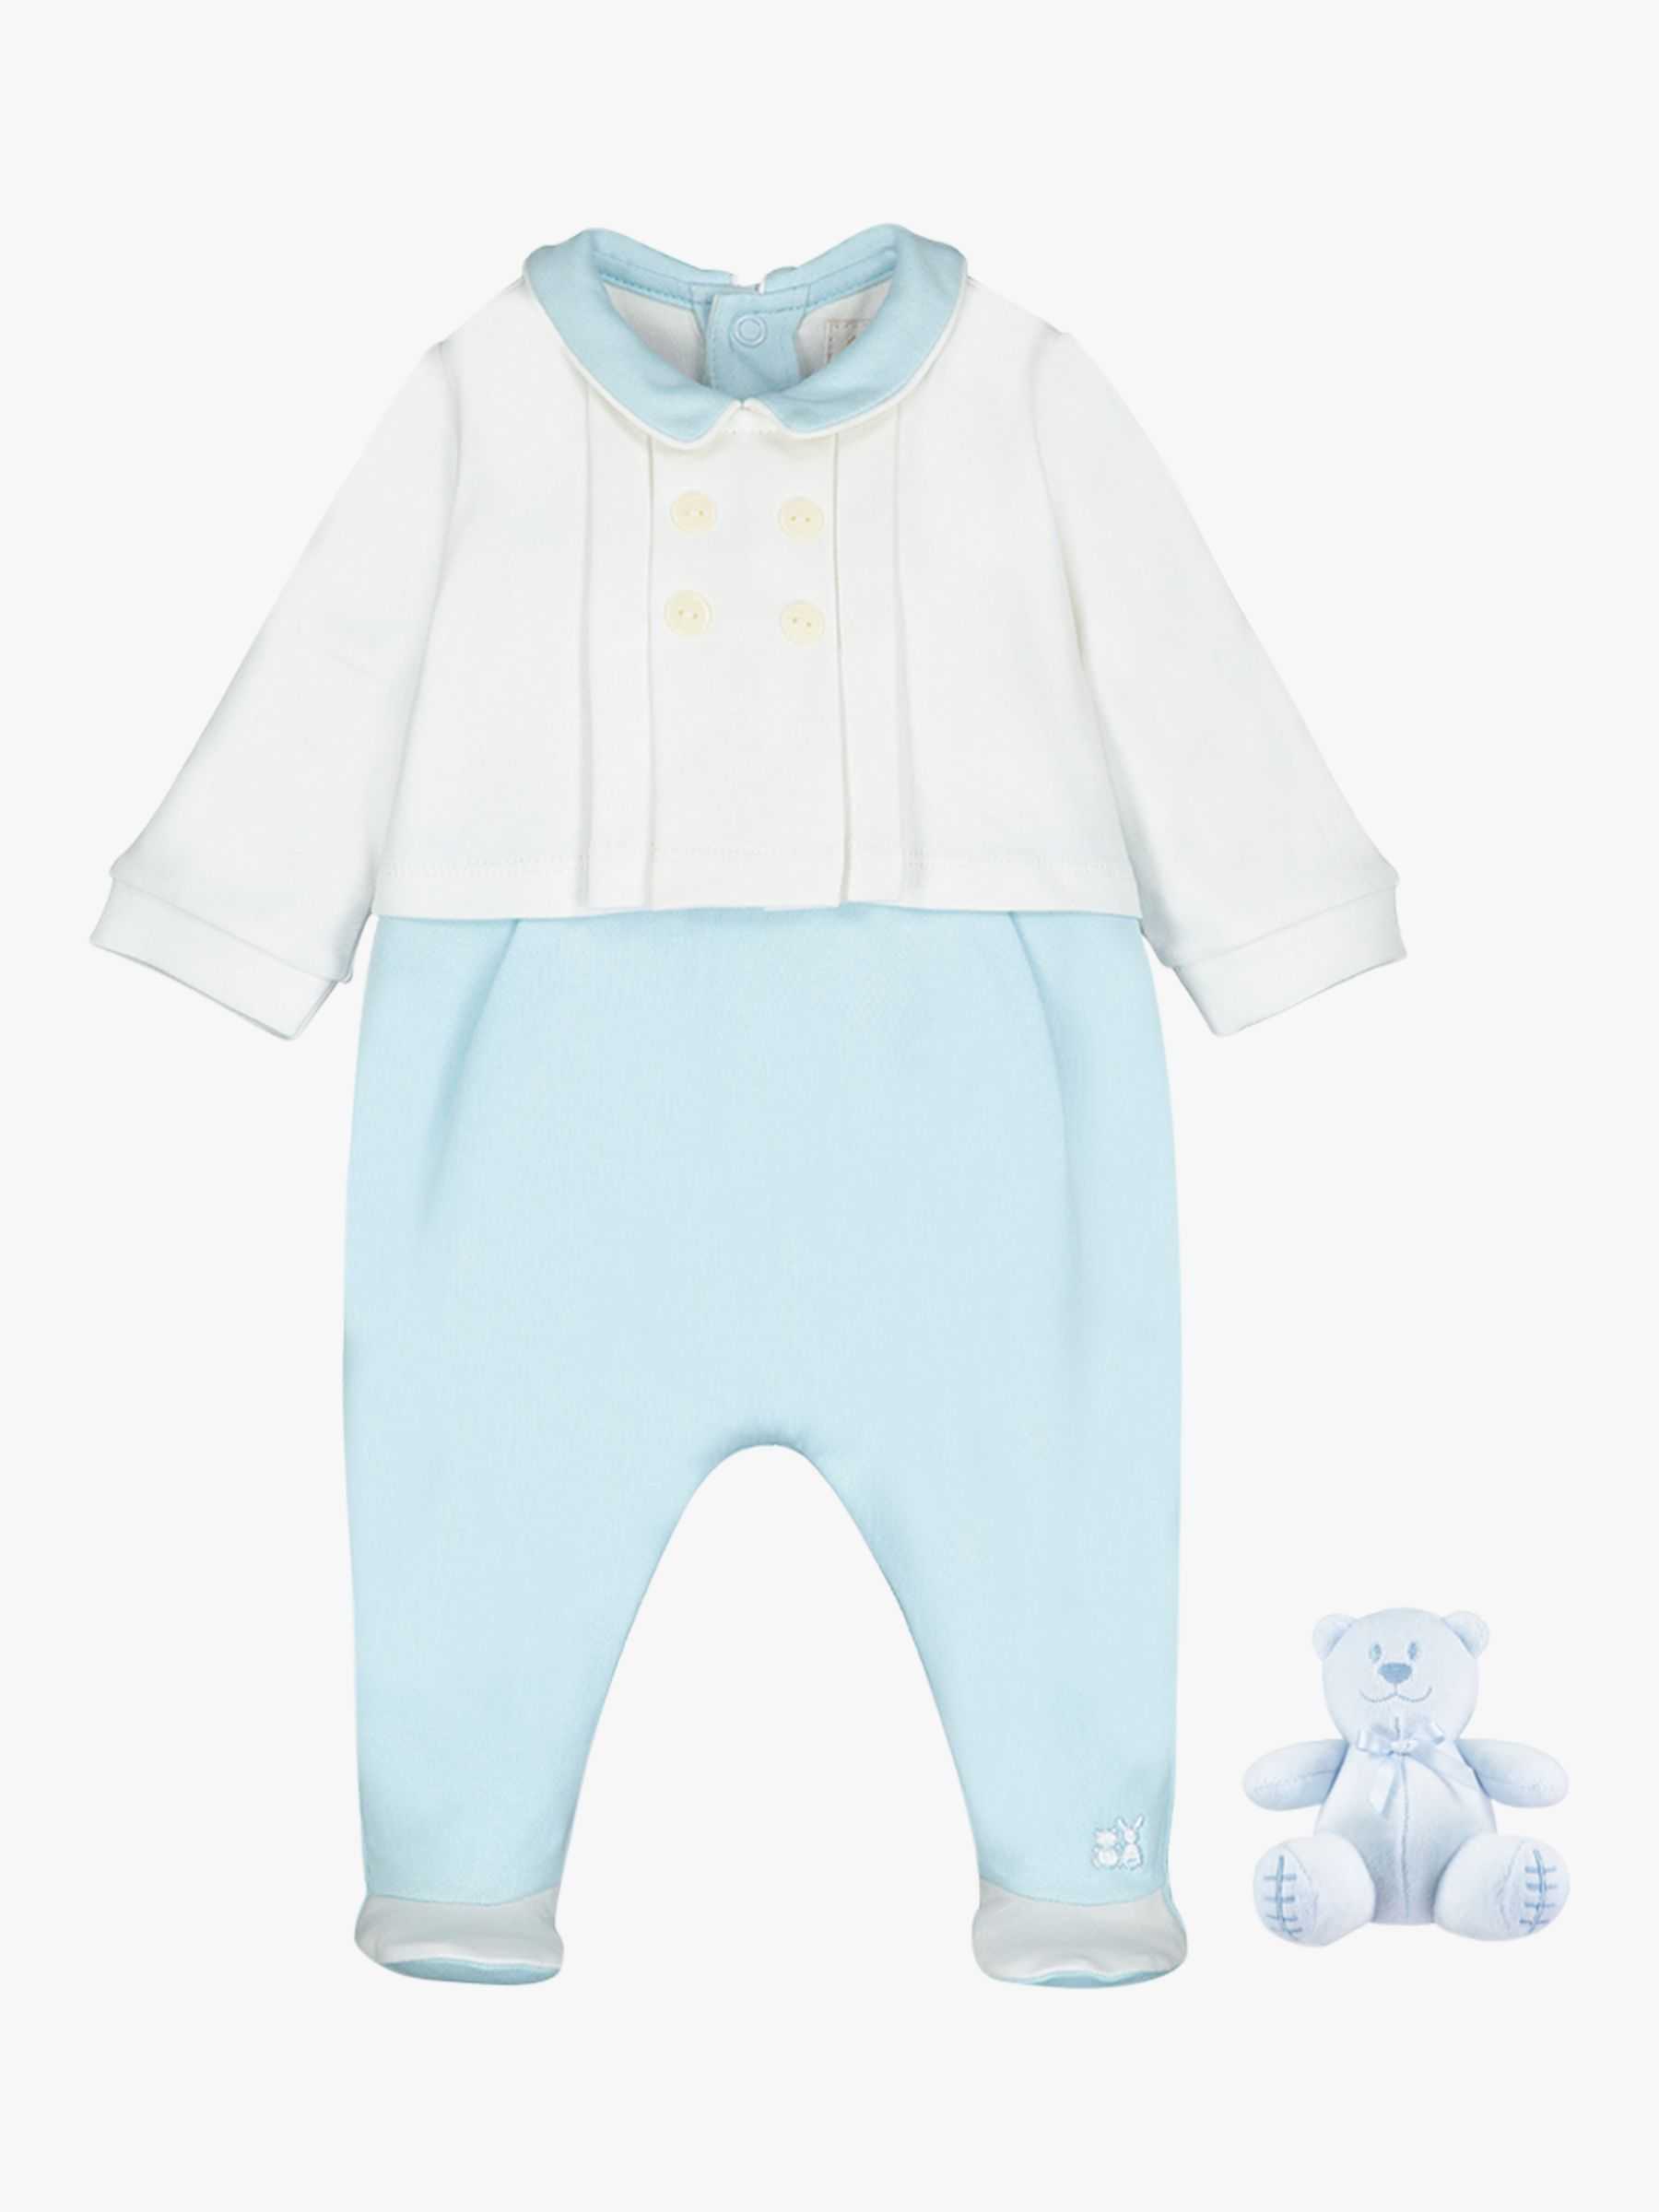 Emile et Rose Emile et Rose Seamus Pleated Sleepsuit and Teddy Bear Set, Pale Blue/White